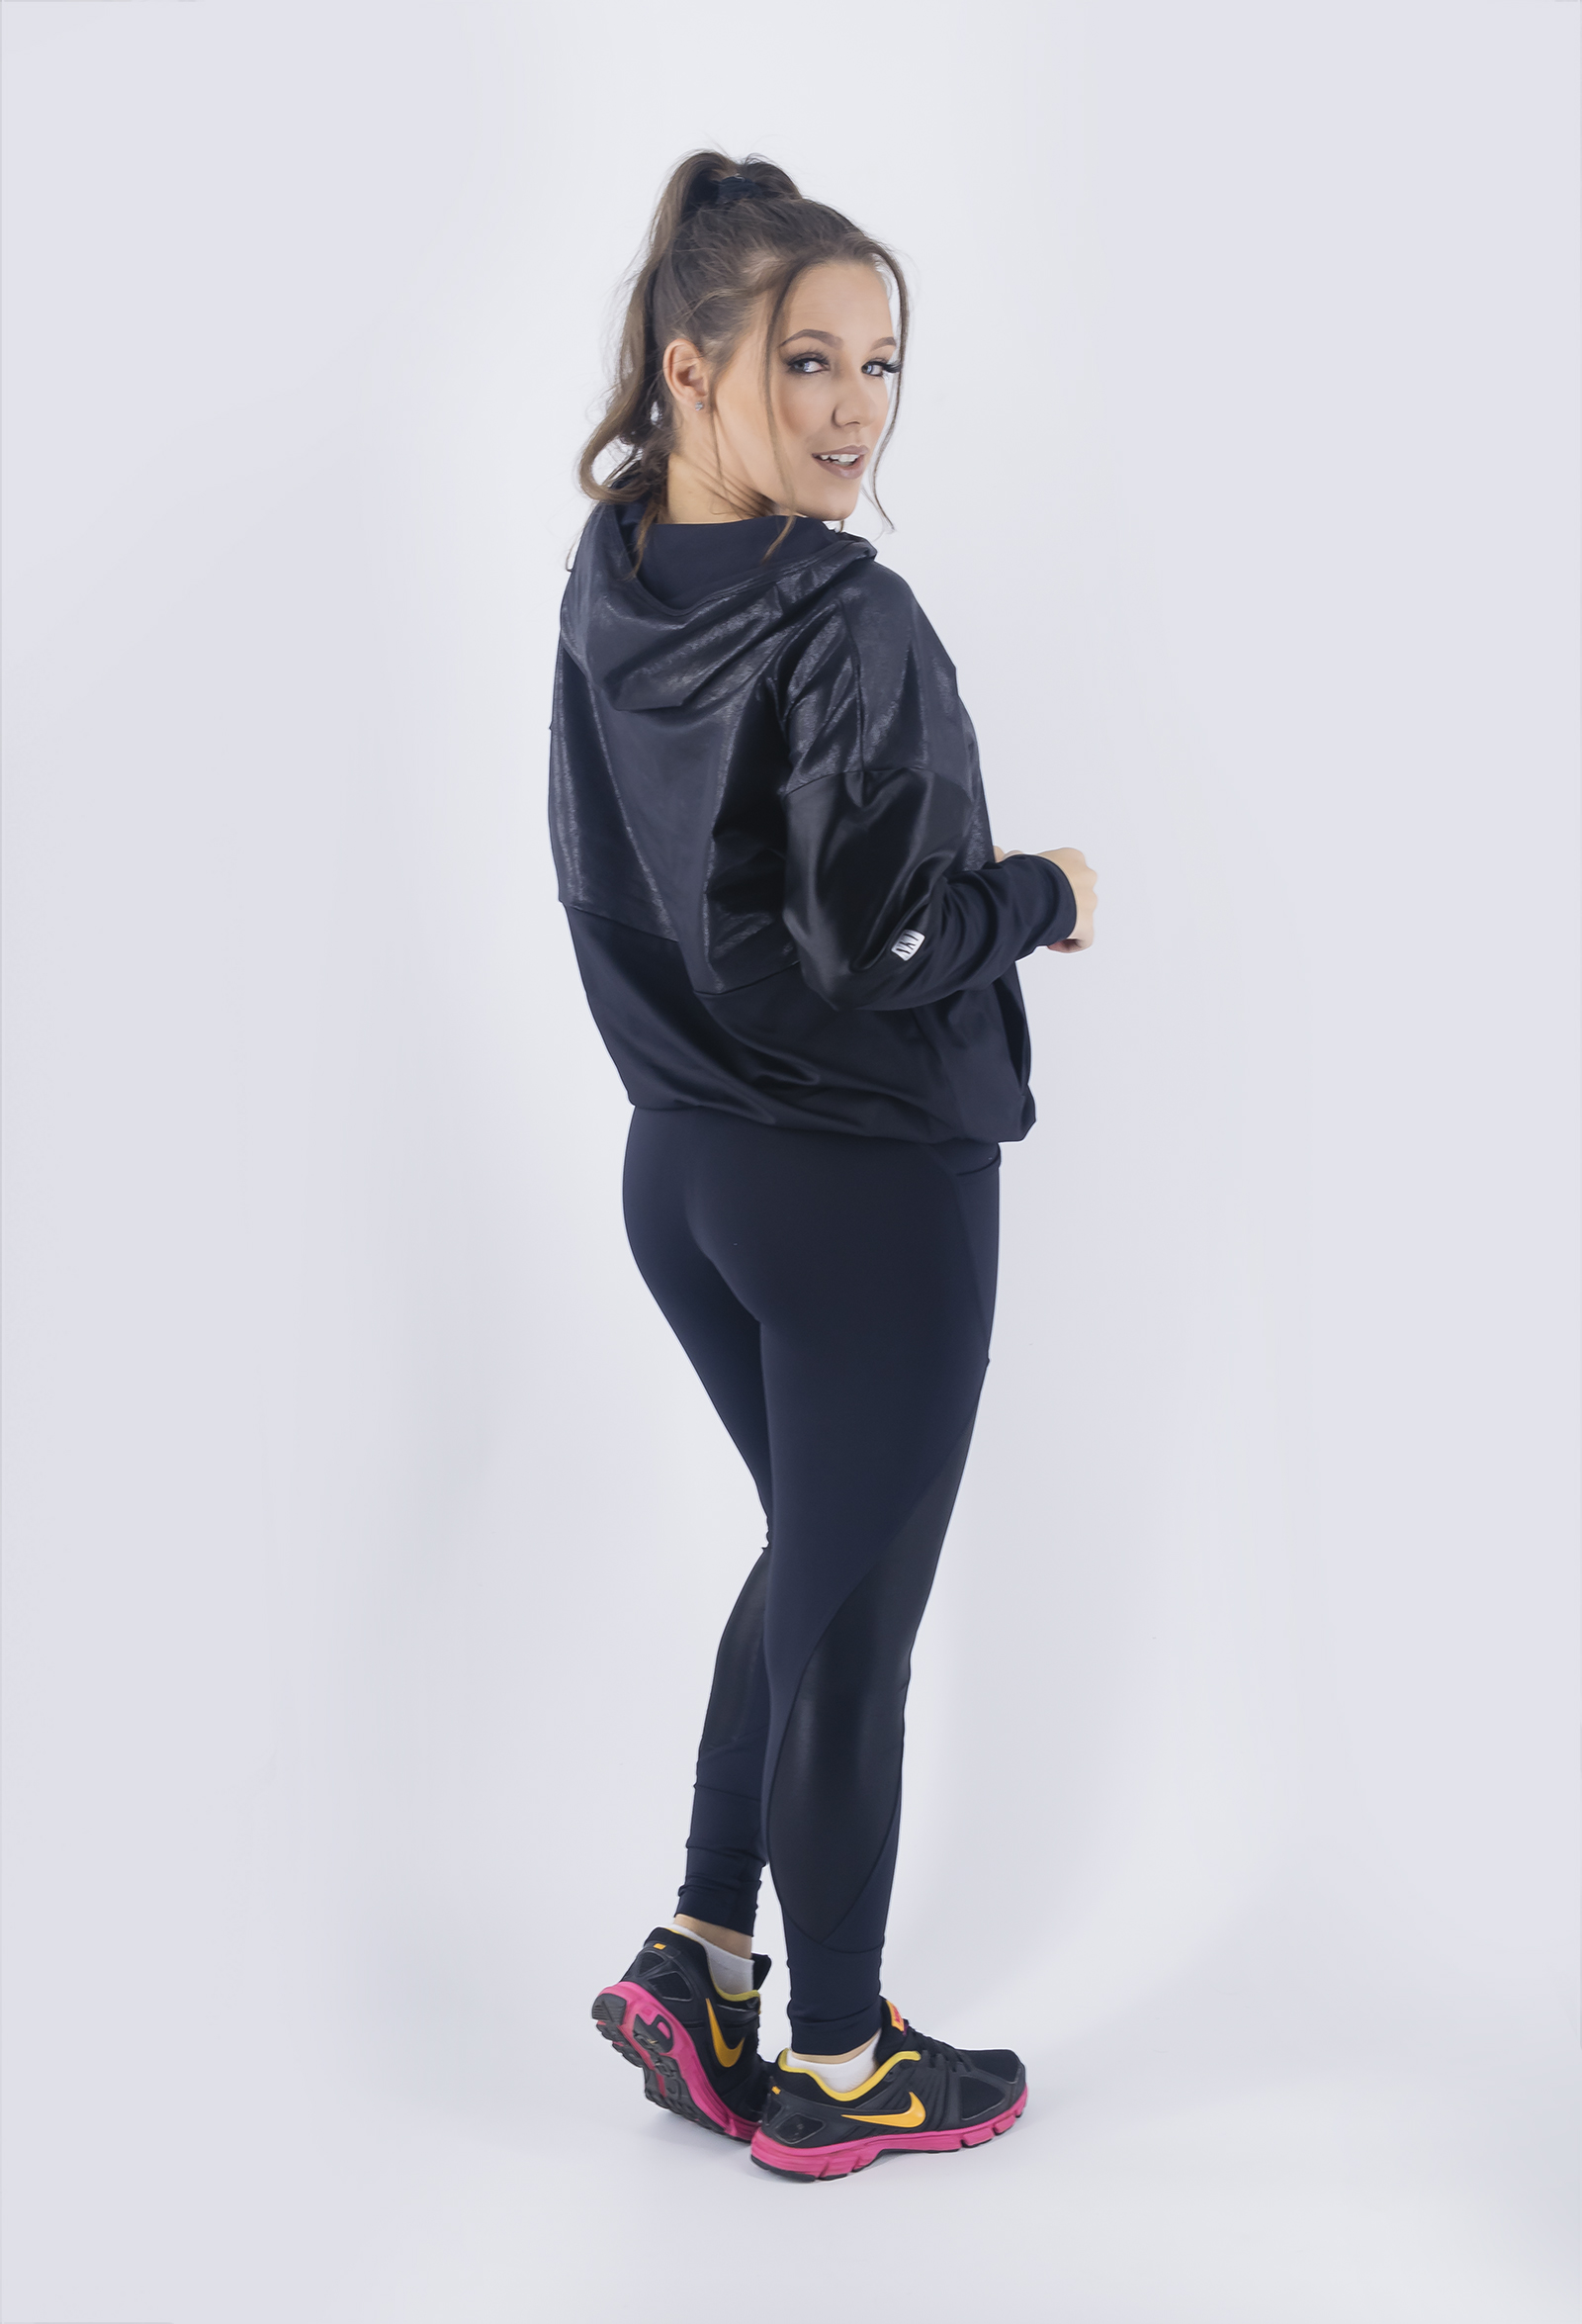 Casaco Lovely Preto, Coleção Just For You - NKT Fitwear Moda Fitness